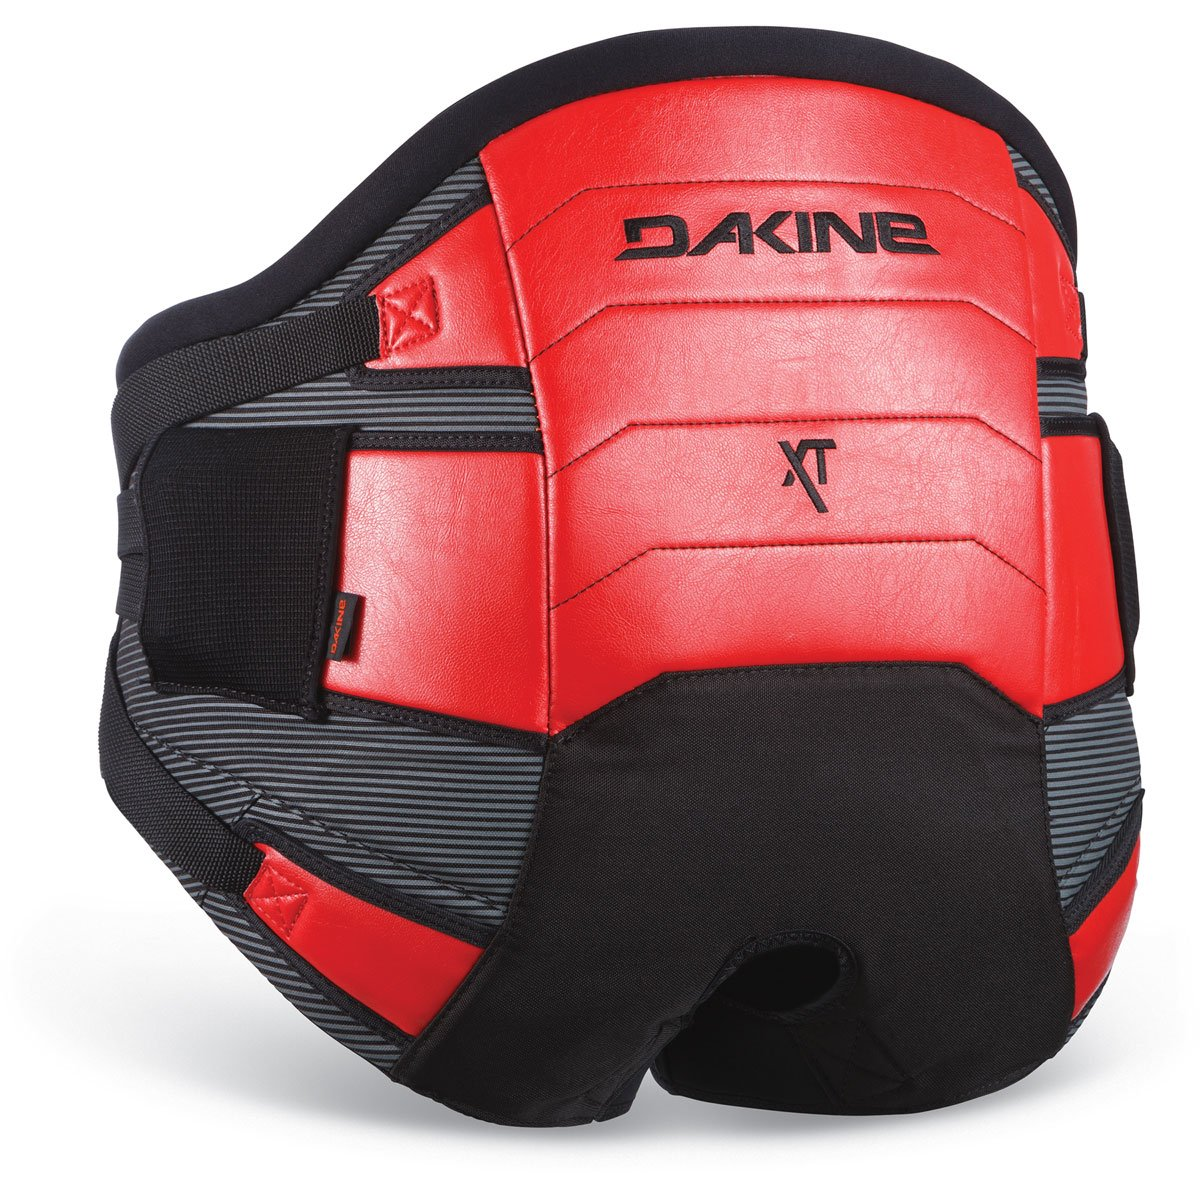 Dakine Men's XT Seat Windsurf Harness, Red, L by Dakine